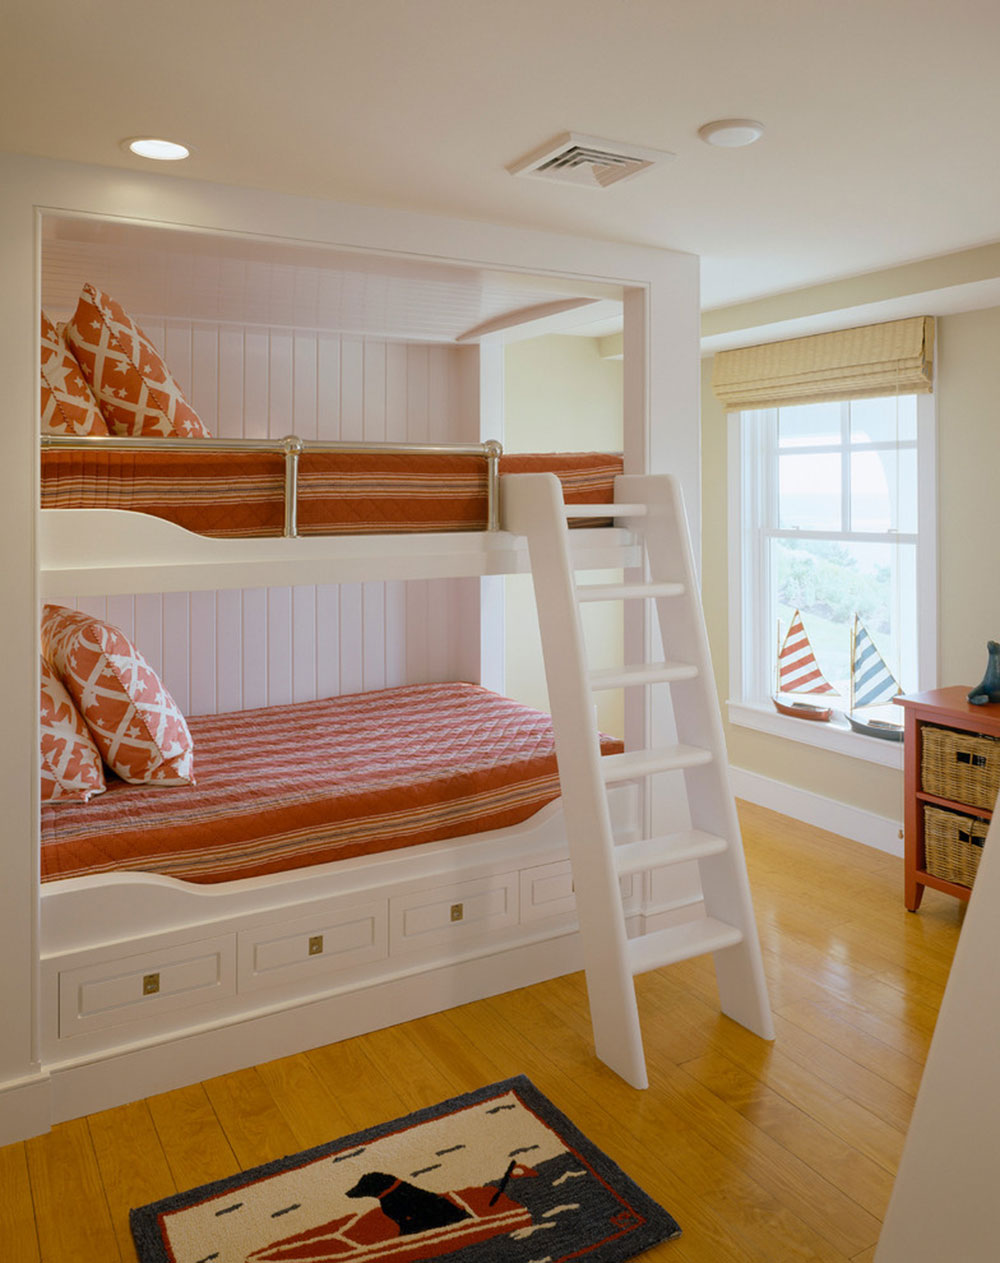 Delightful Your Child Will Love These Bunk Beds With